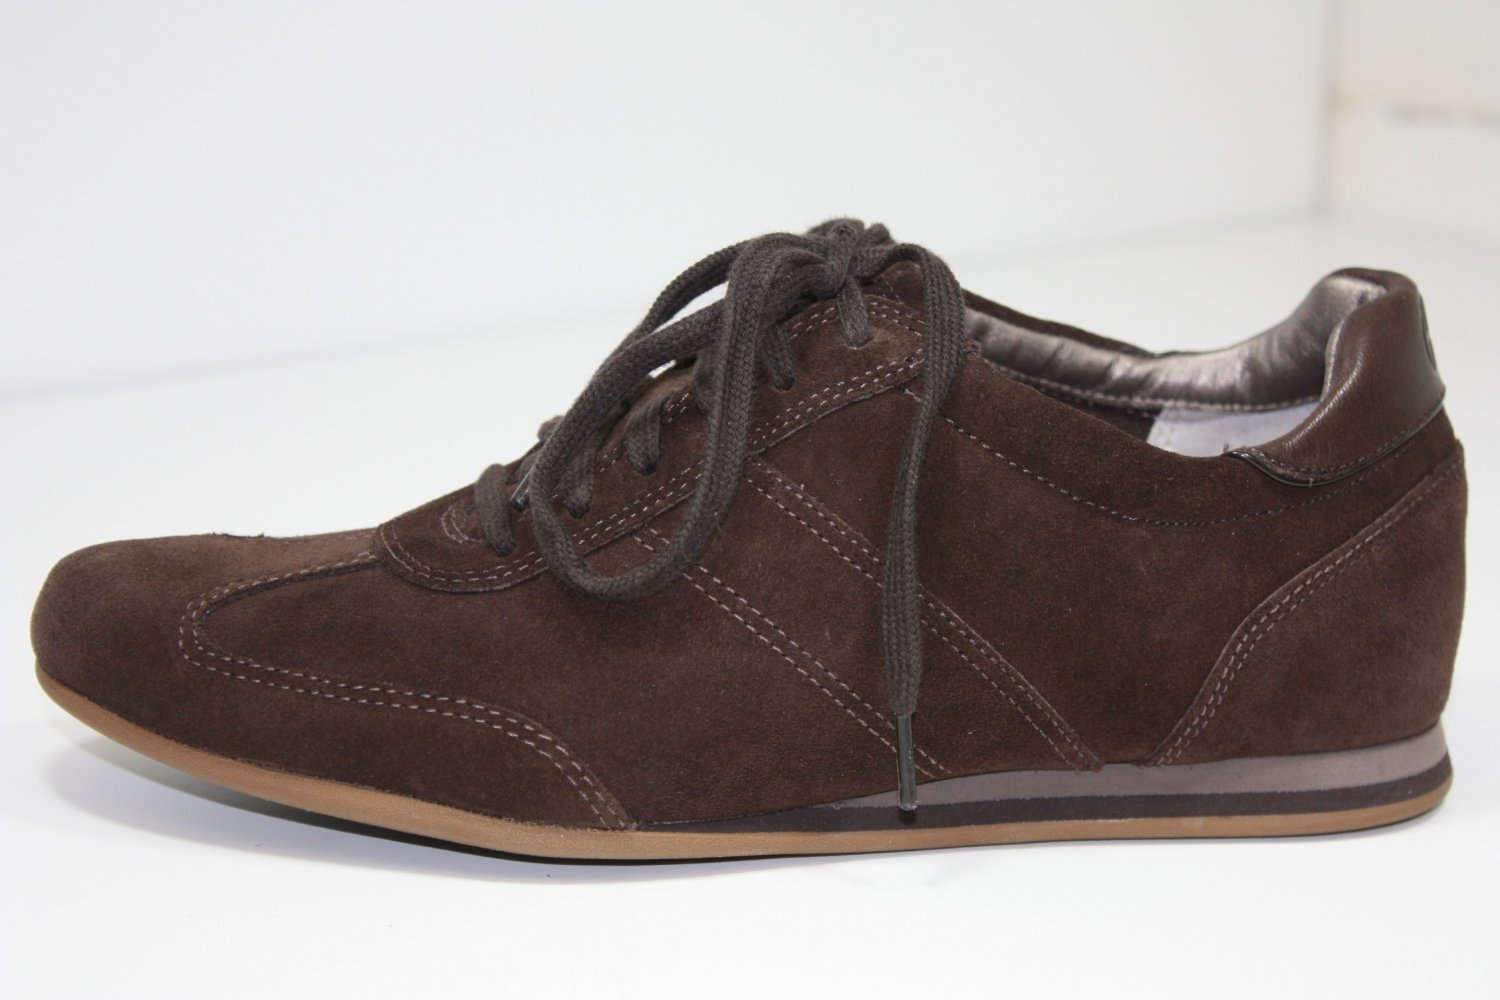 Cole-Haan Air Rianna Sneakers Dark Brown Shoes US 6.5